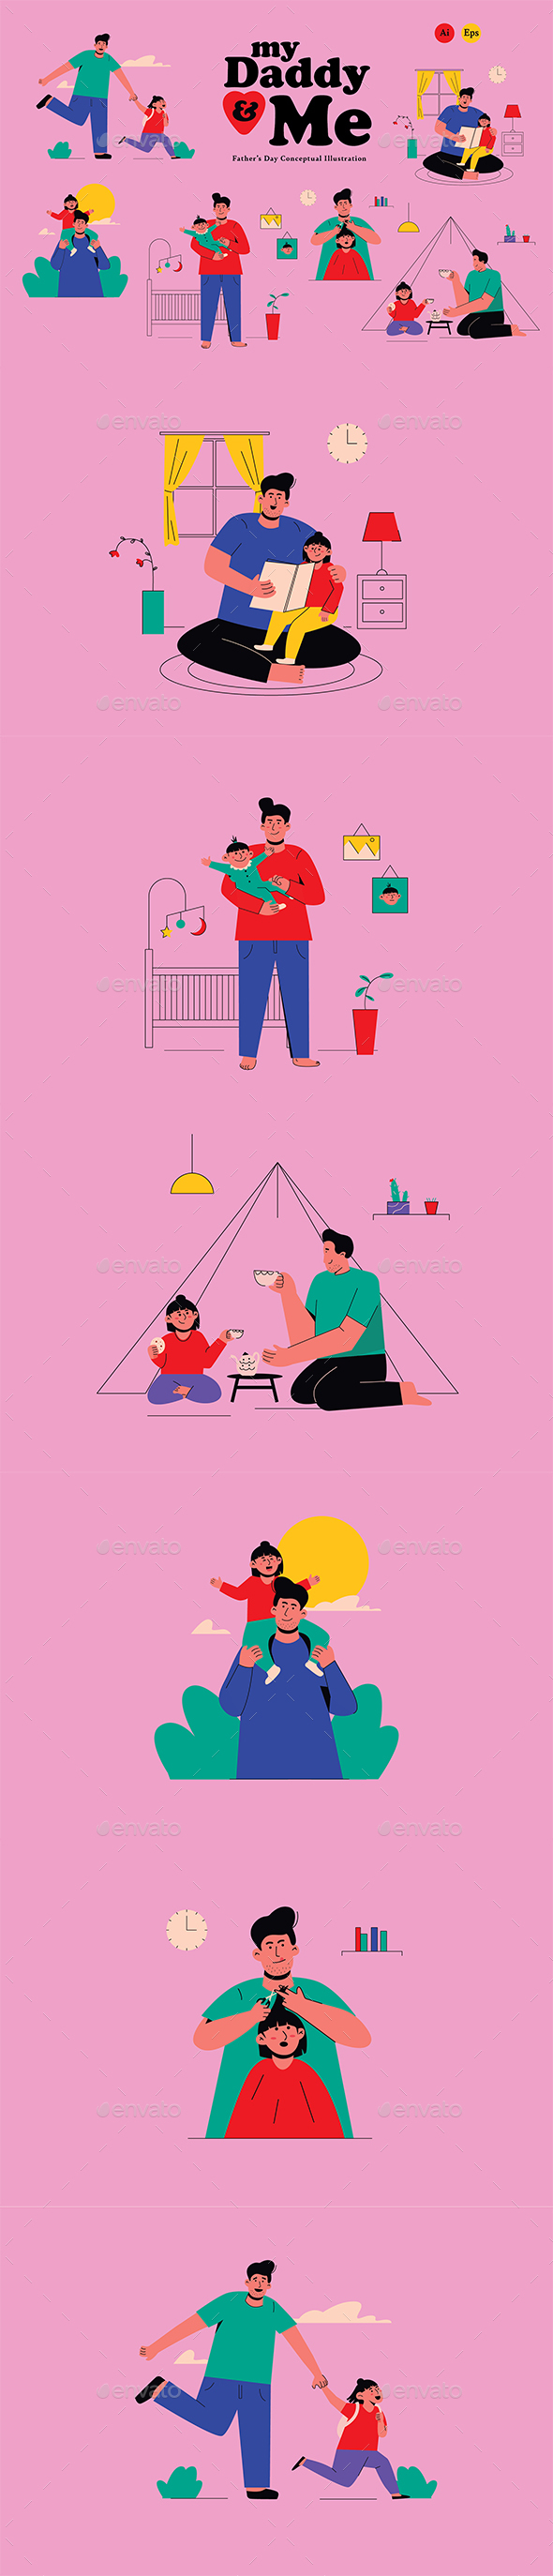 My Daddy & Me Fathers Day Illustration